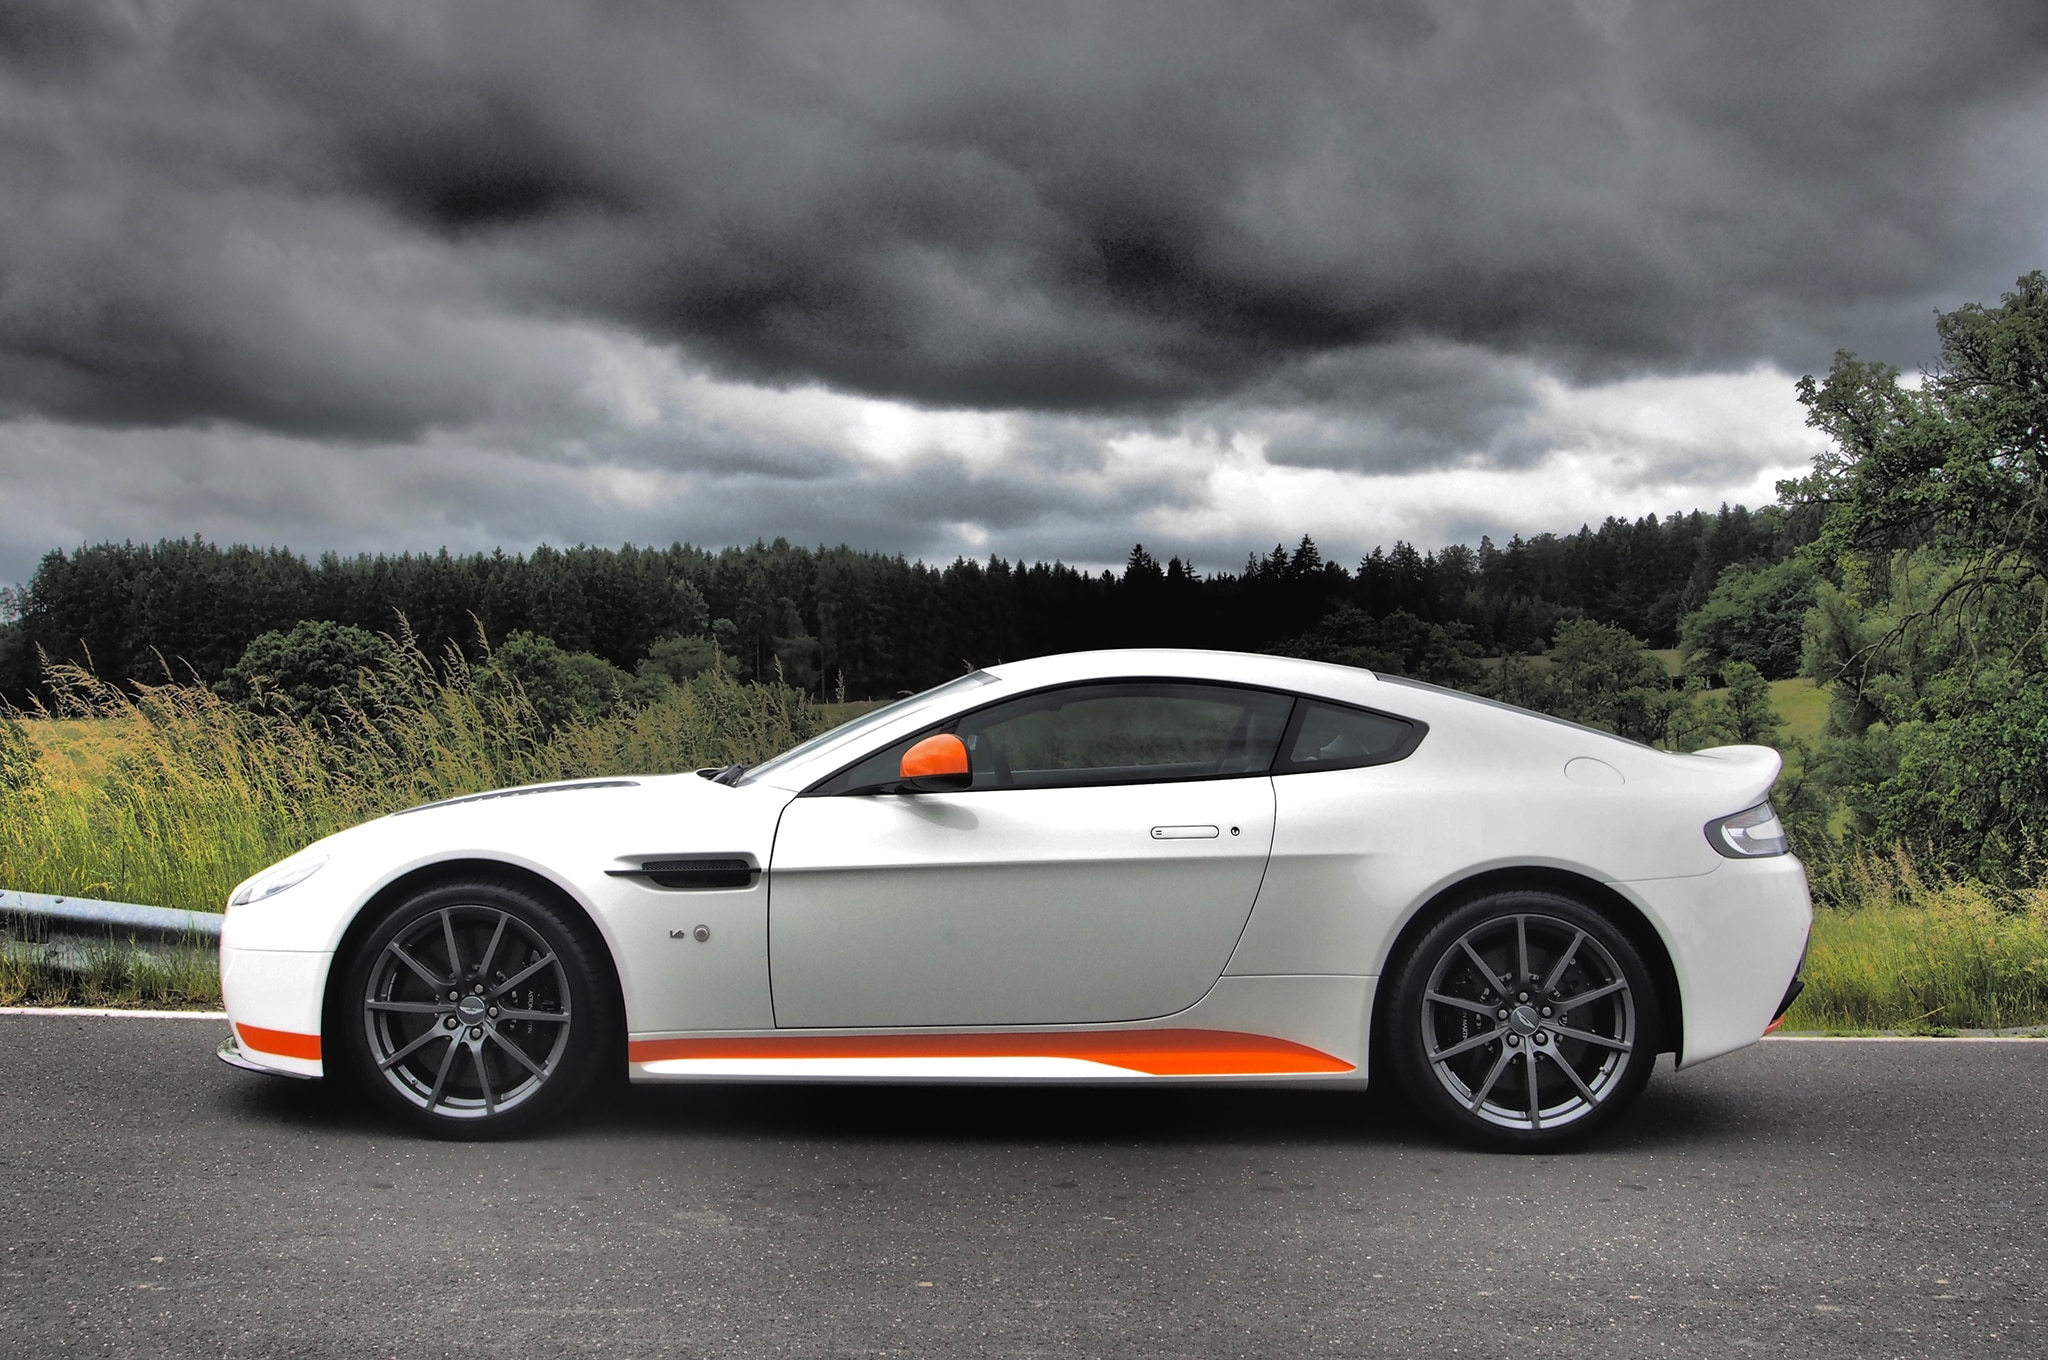 Aston Martin V Vantage S One Week Review Automobile Magazine - Aston martin vantage v12